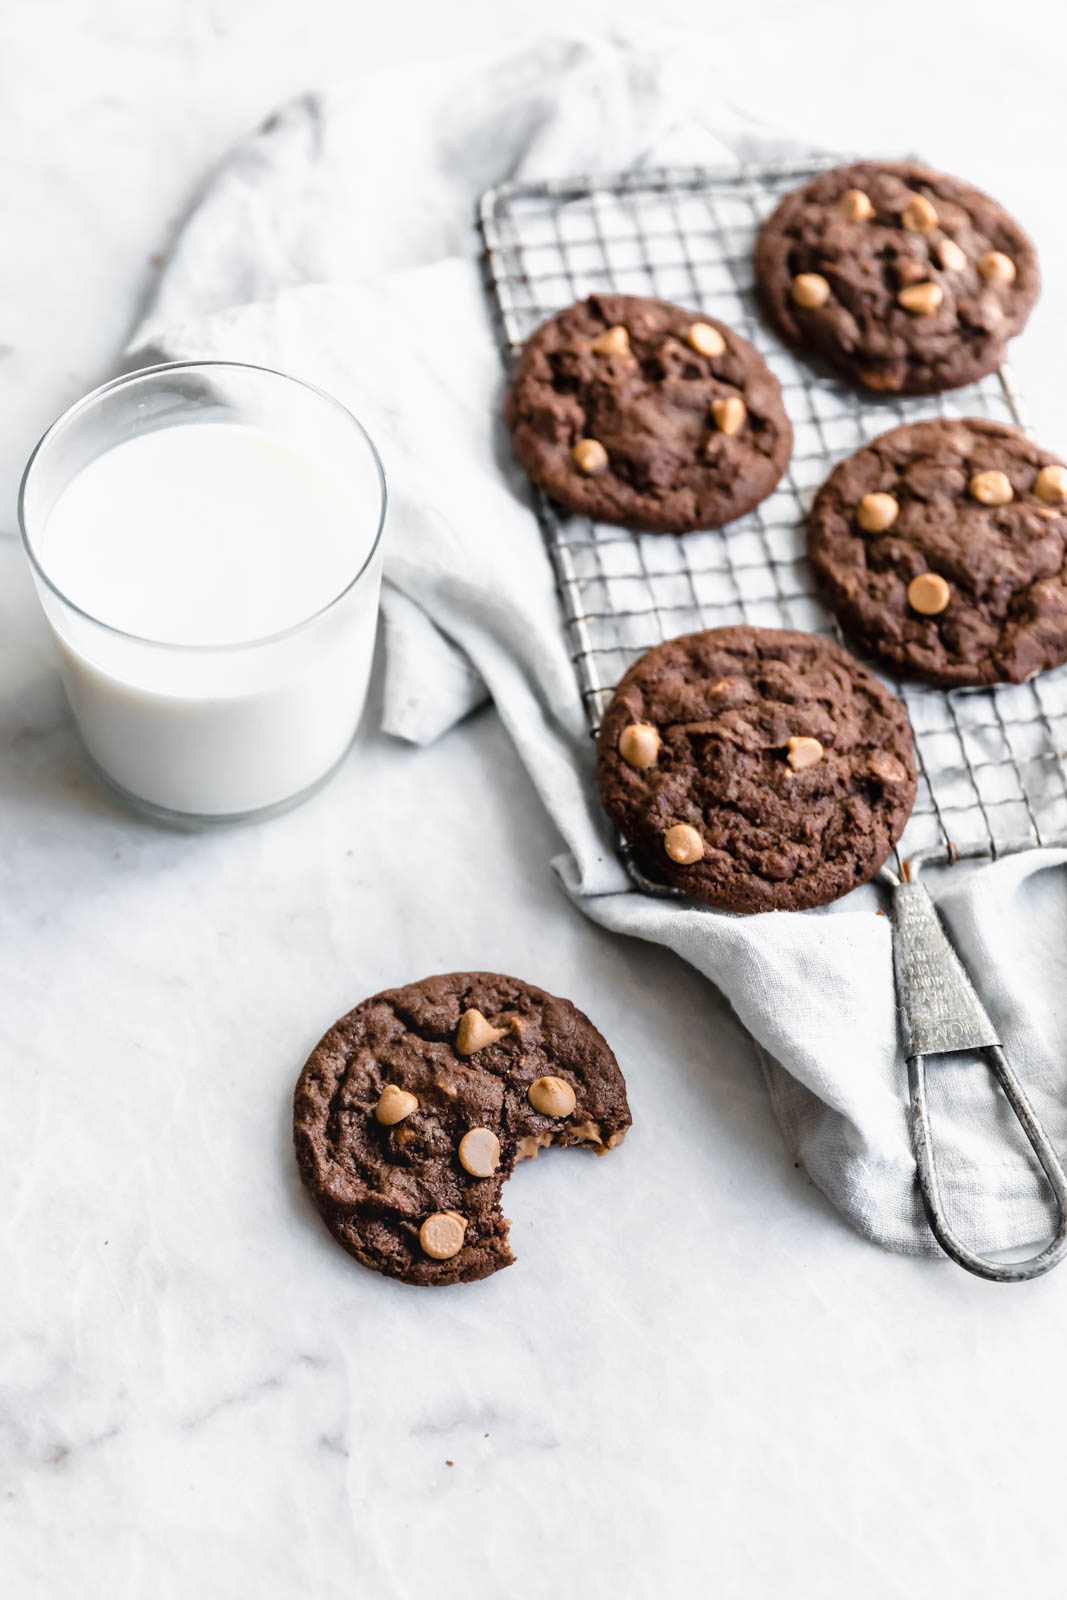 Chocolate Peanut Butter Chip Cookies next to glass of milk